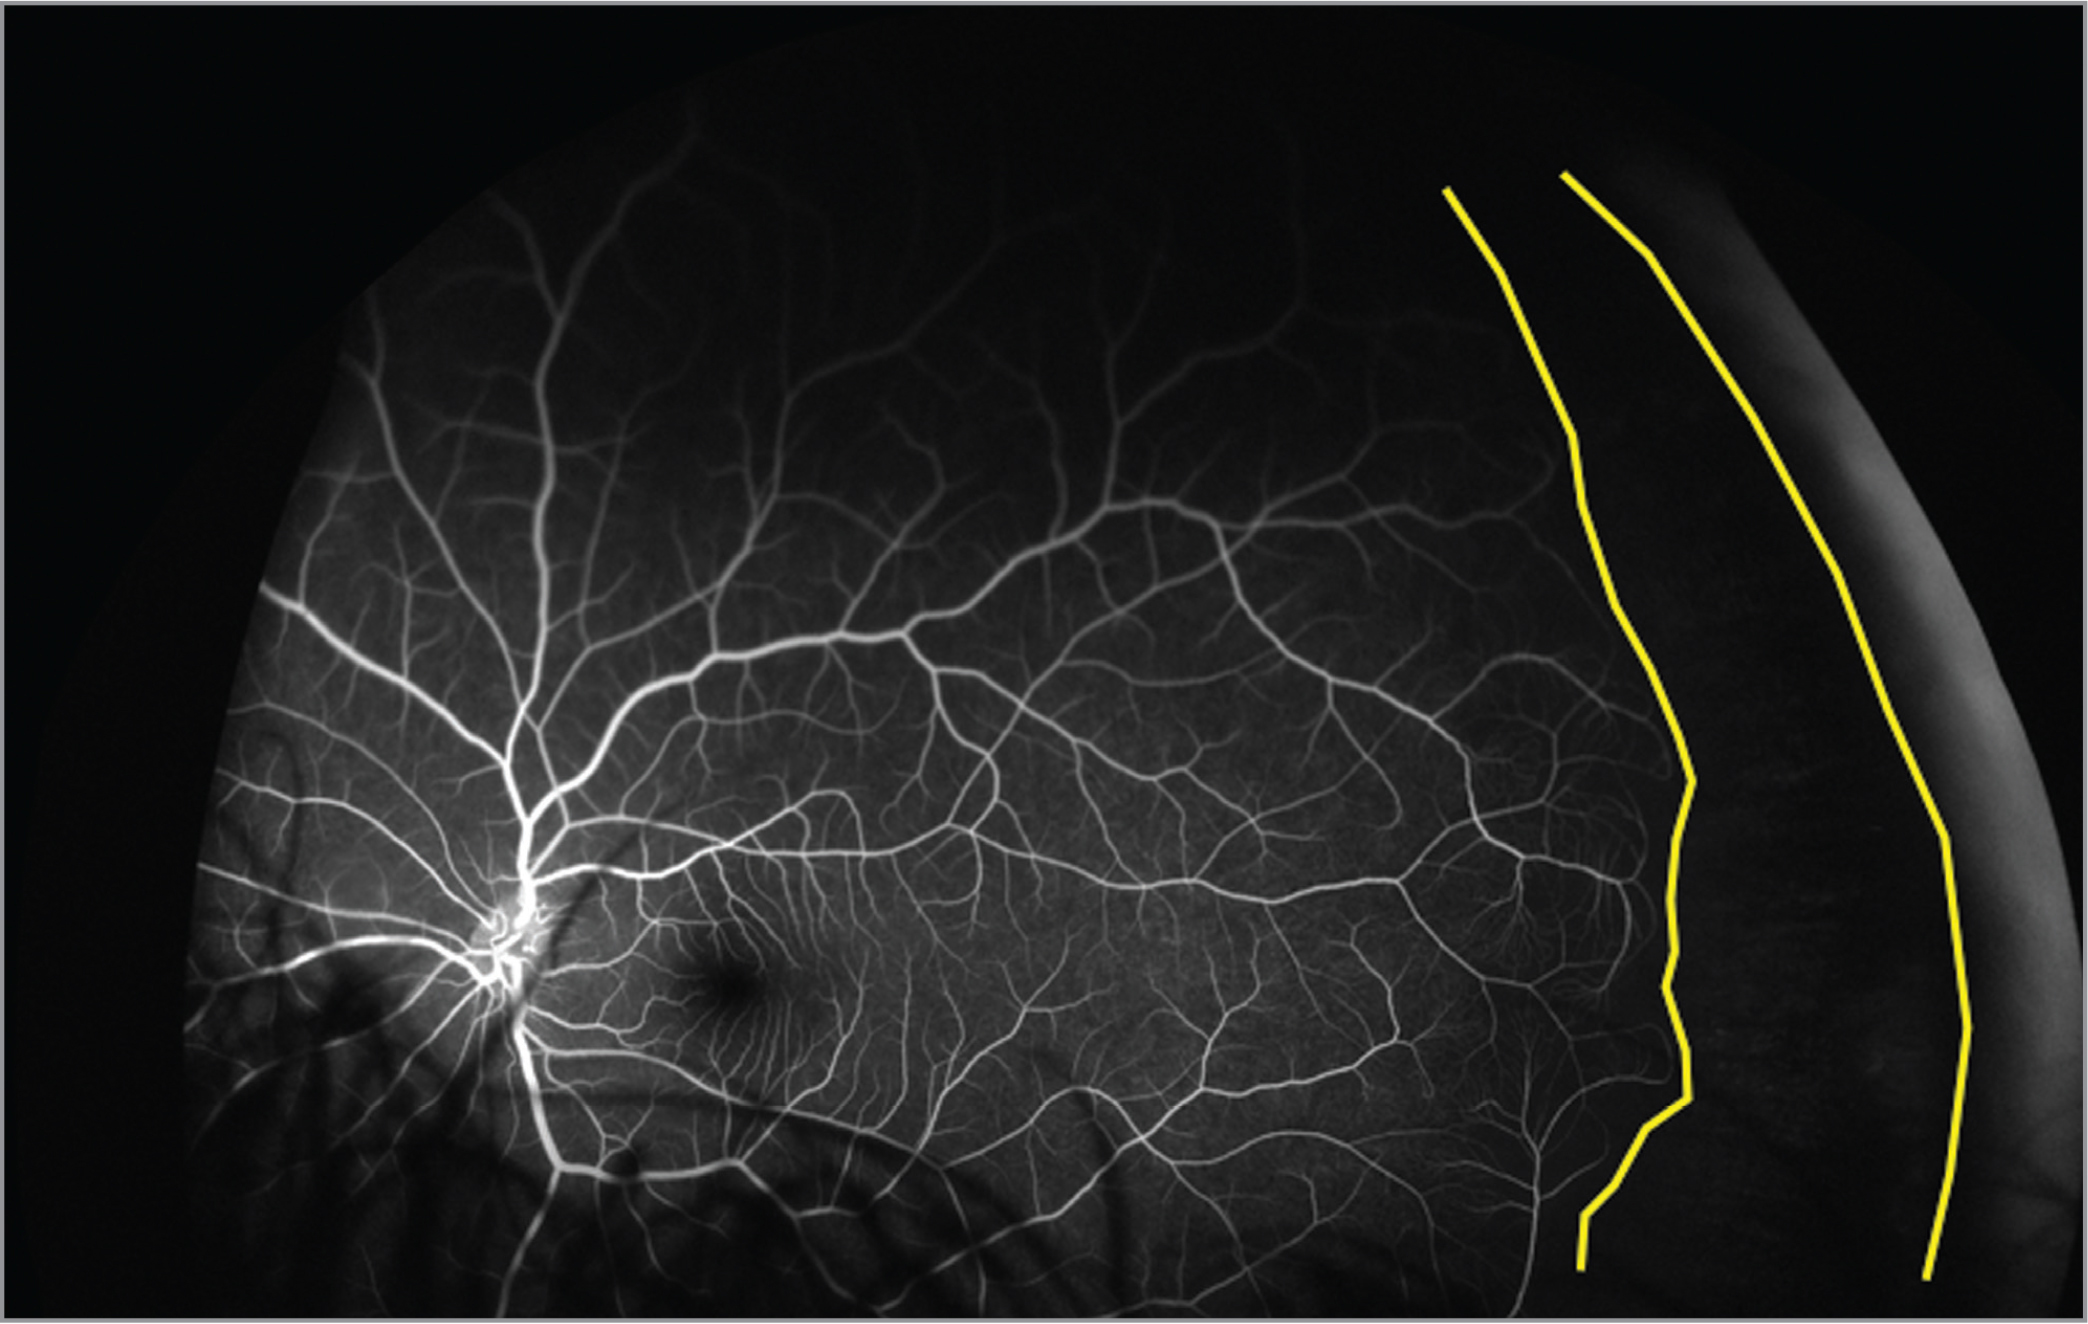 Widefield fluorescein angiography of the fellow unaffected eye in a patient with Coats' disease demonstrating peripheral nonperfusion (area between the yellow outline).